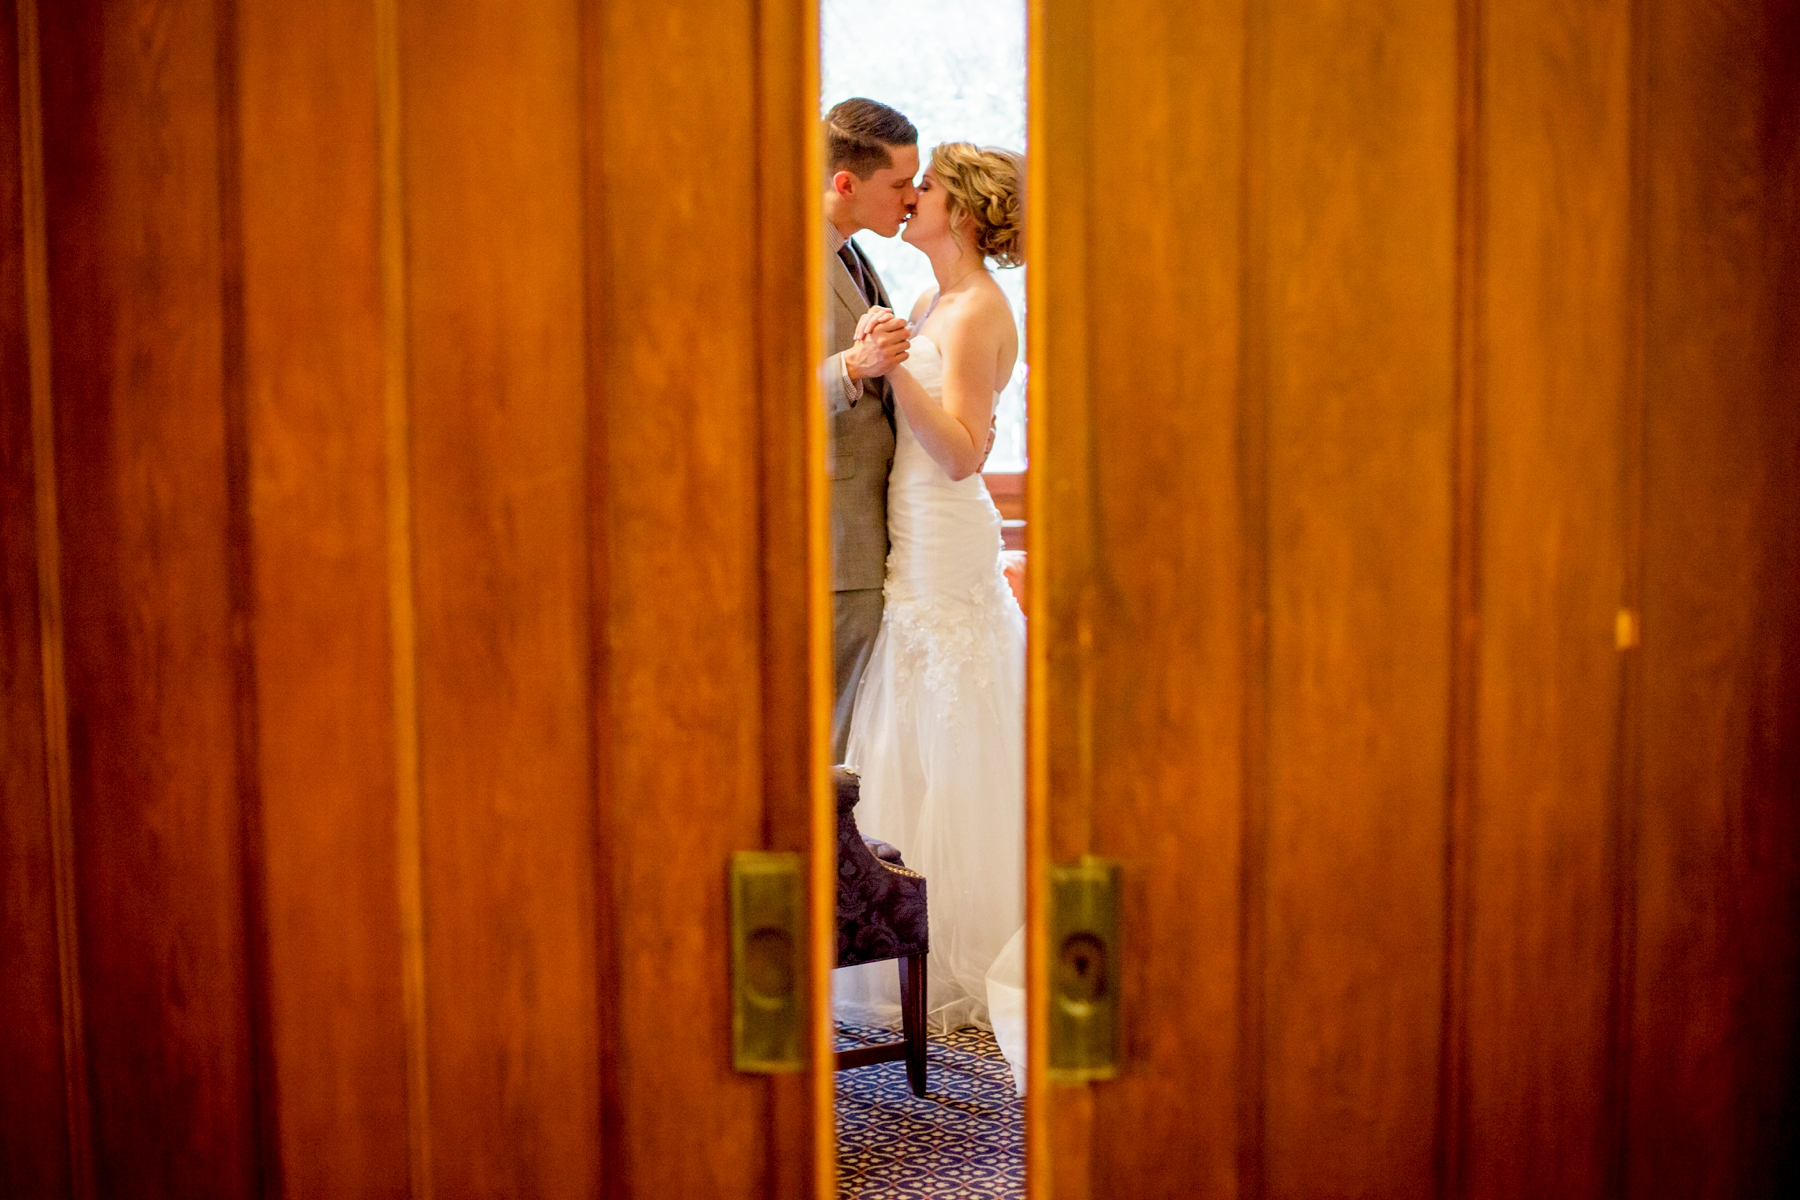 Brandon_Shafer_Photography_Kristen_Corey_Downtown_Grand_Rapids_Fall_Wedding0032.JPG